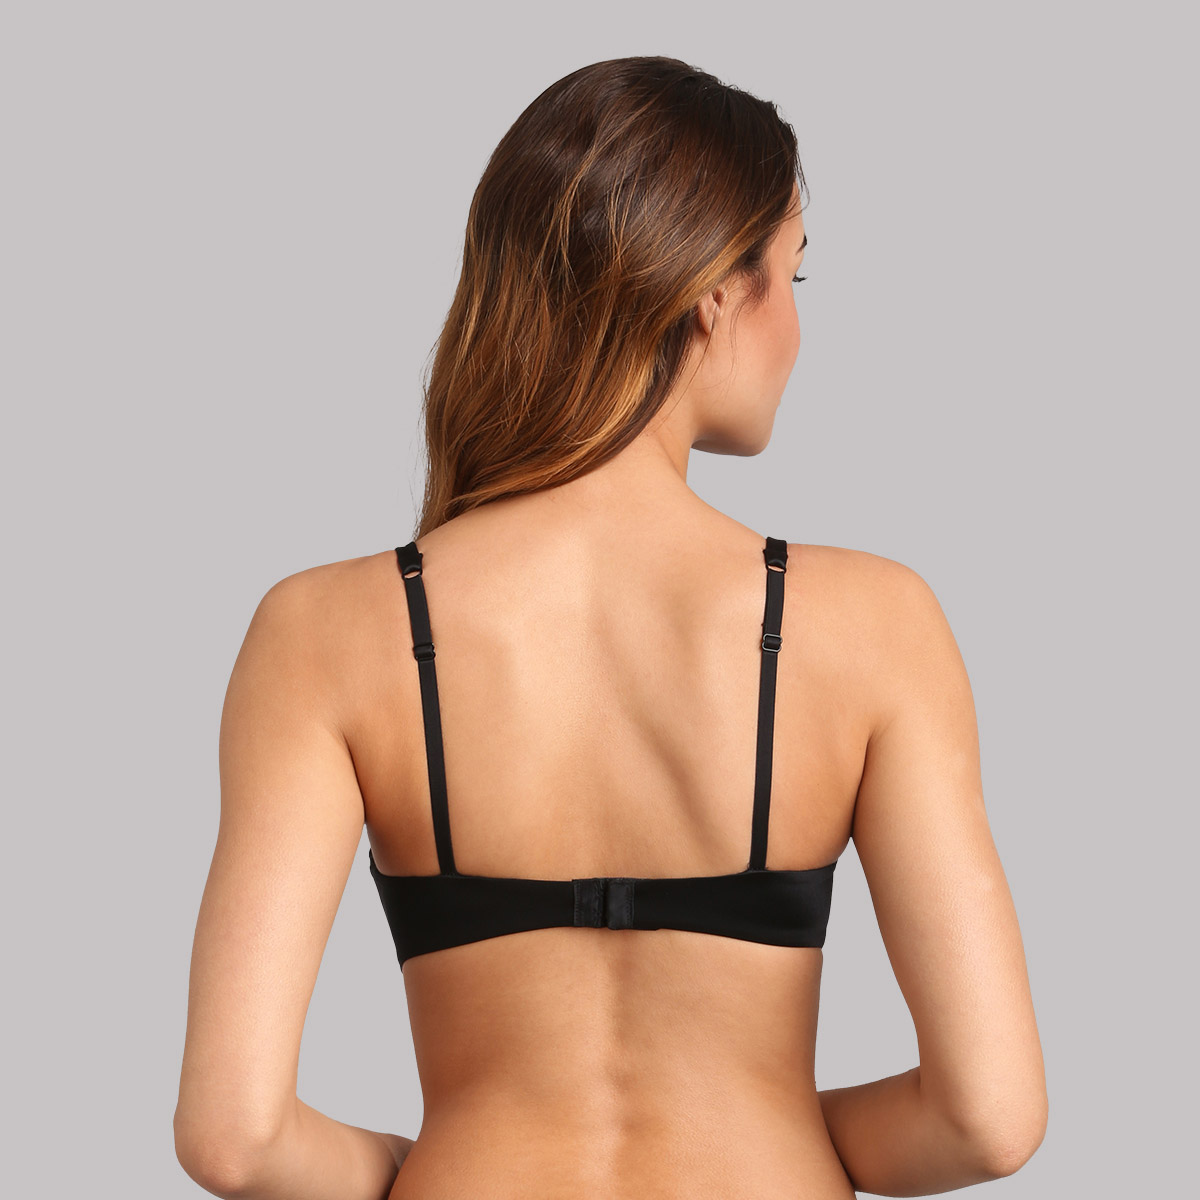 Full cup bra with removable underwires in black 24h Absolute Soft, , PLAYTEX